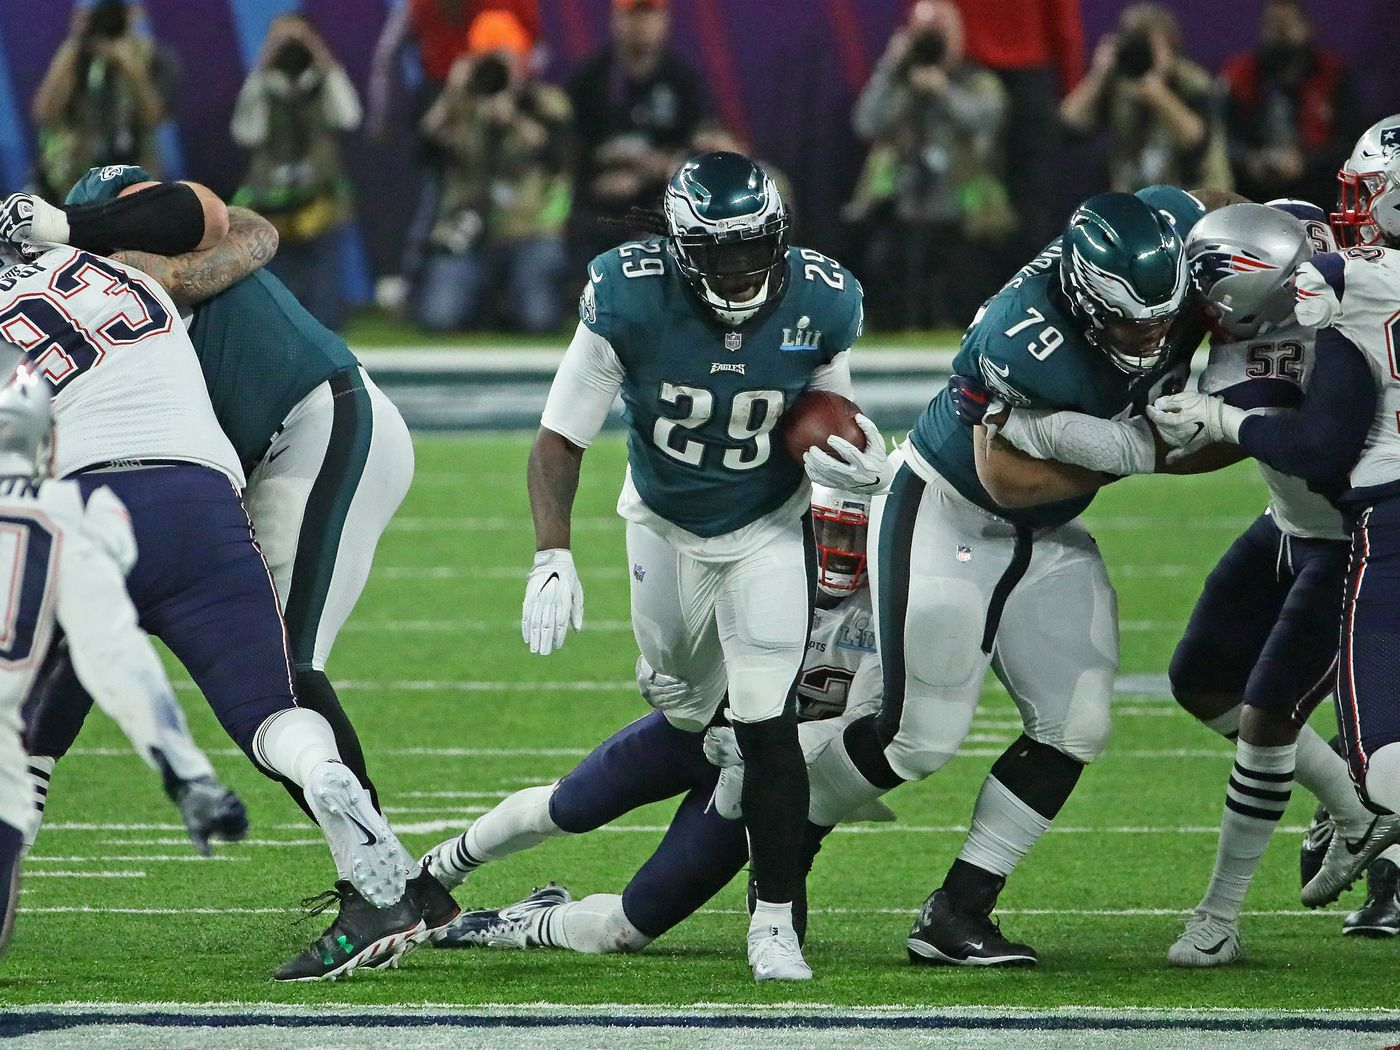 e395db27415 ... 4 things to know about new Detroit Lions running back LeGarrette Blount  - Pride Of Detroit ...